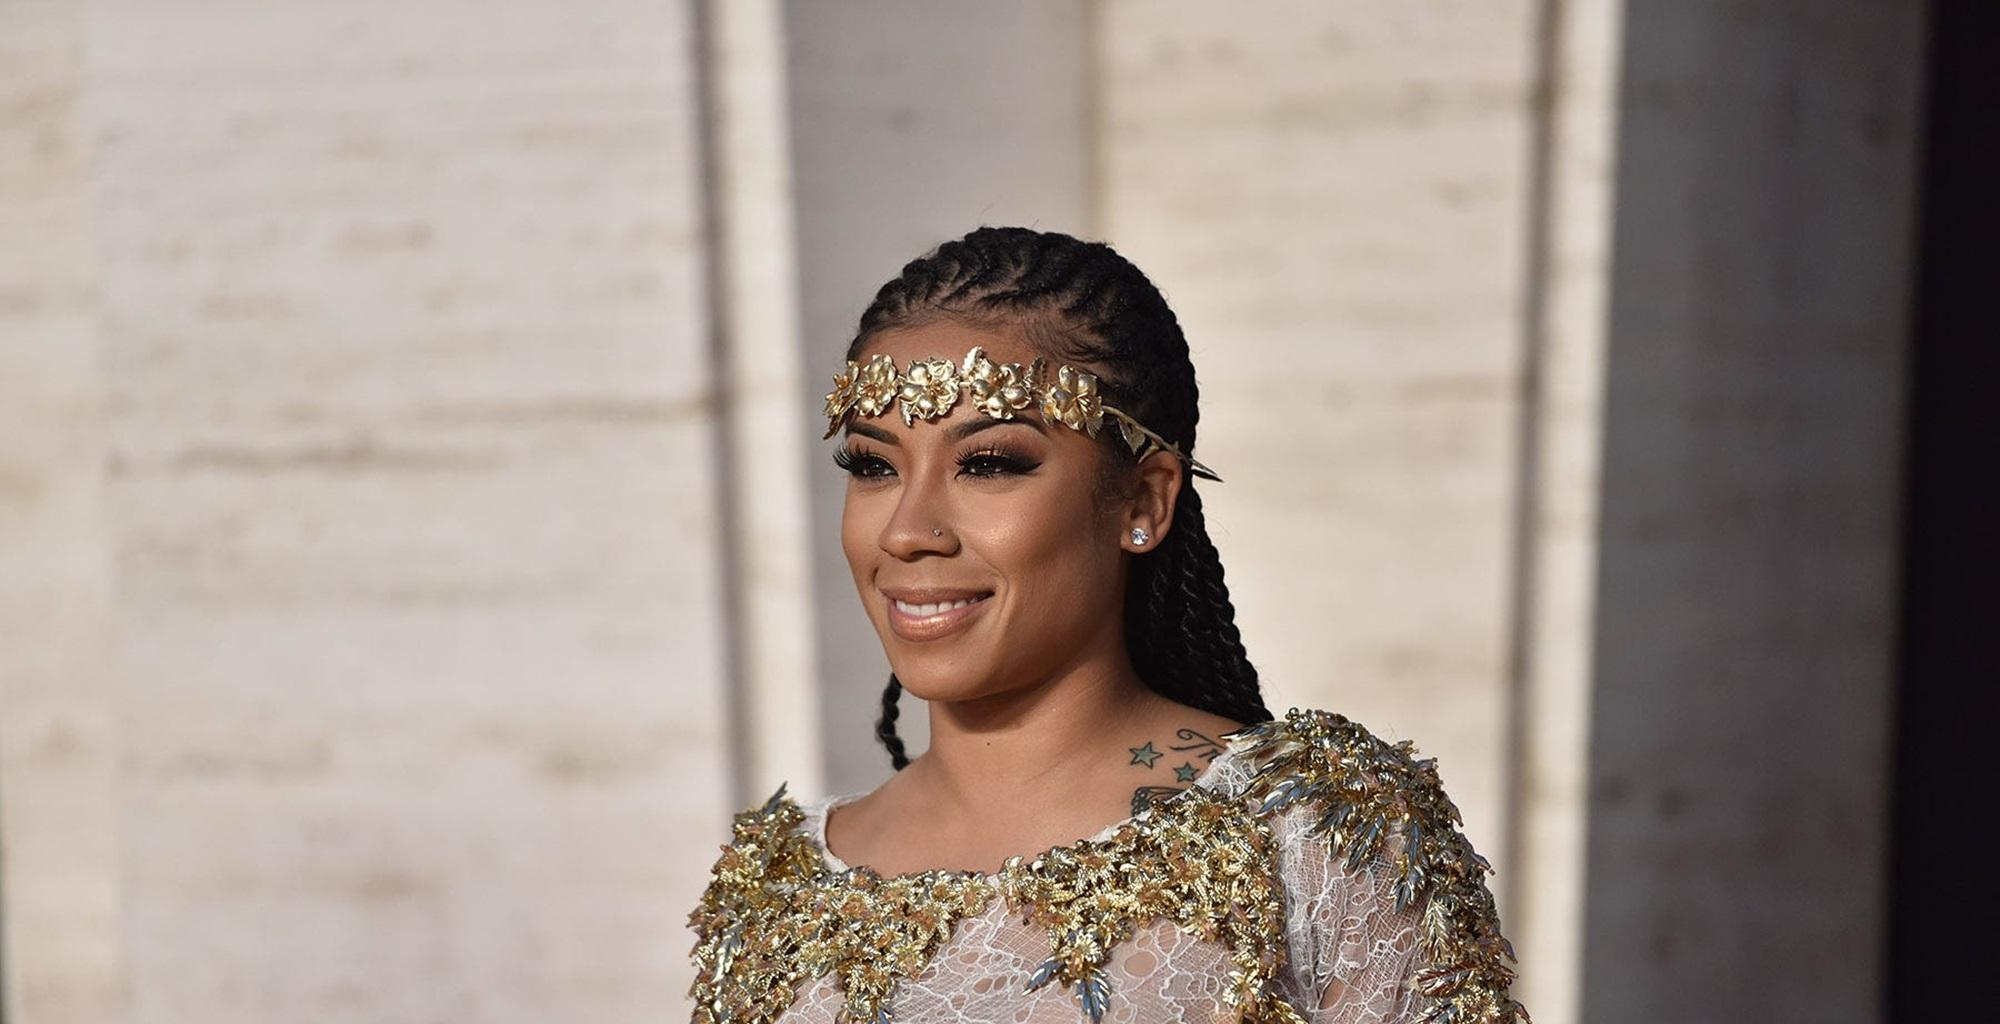 Keyshia Cole And Boyfriend Niko Khale Have Very Different Reactions To O.T. Genasis's Decision To Remix Her Song, 'Love'